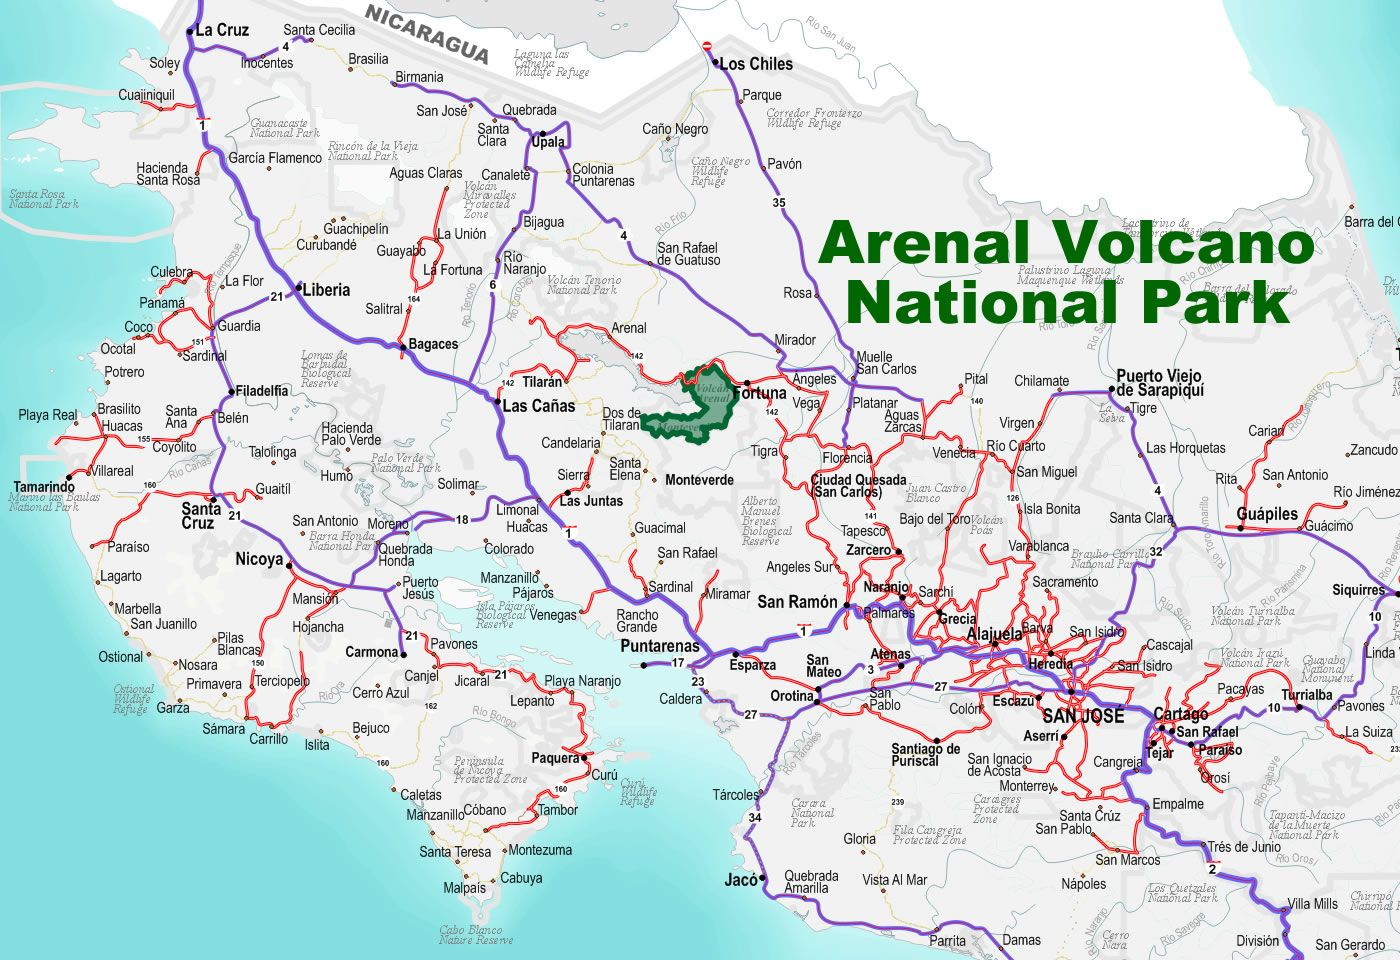 arenal costa rica map A Road To Arenal Volcano National Park In Costa Rica Free arenal costa rica map